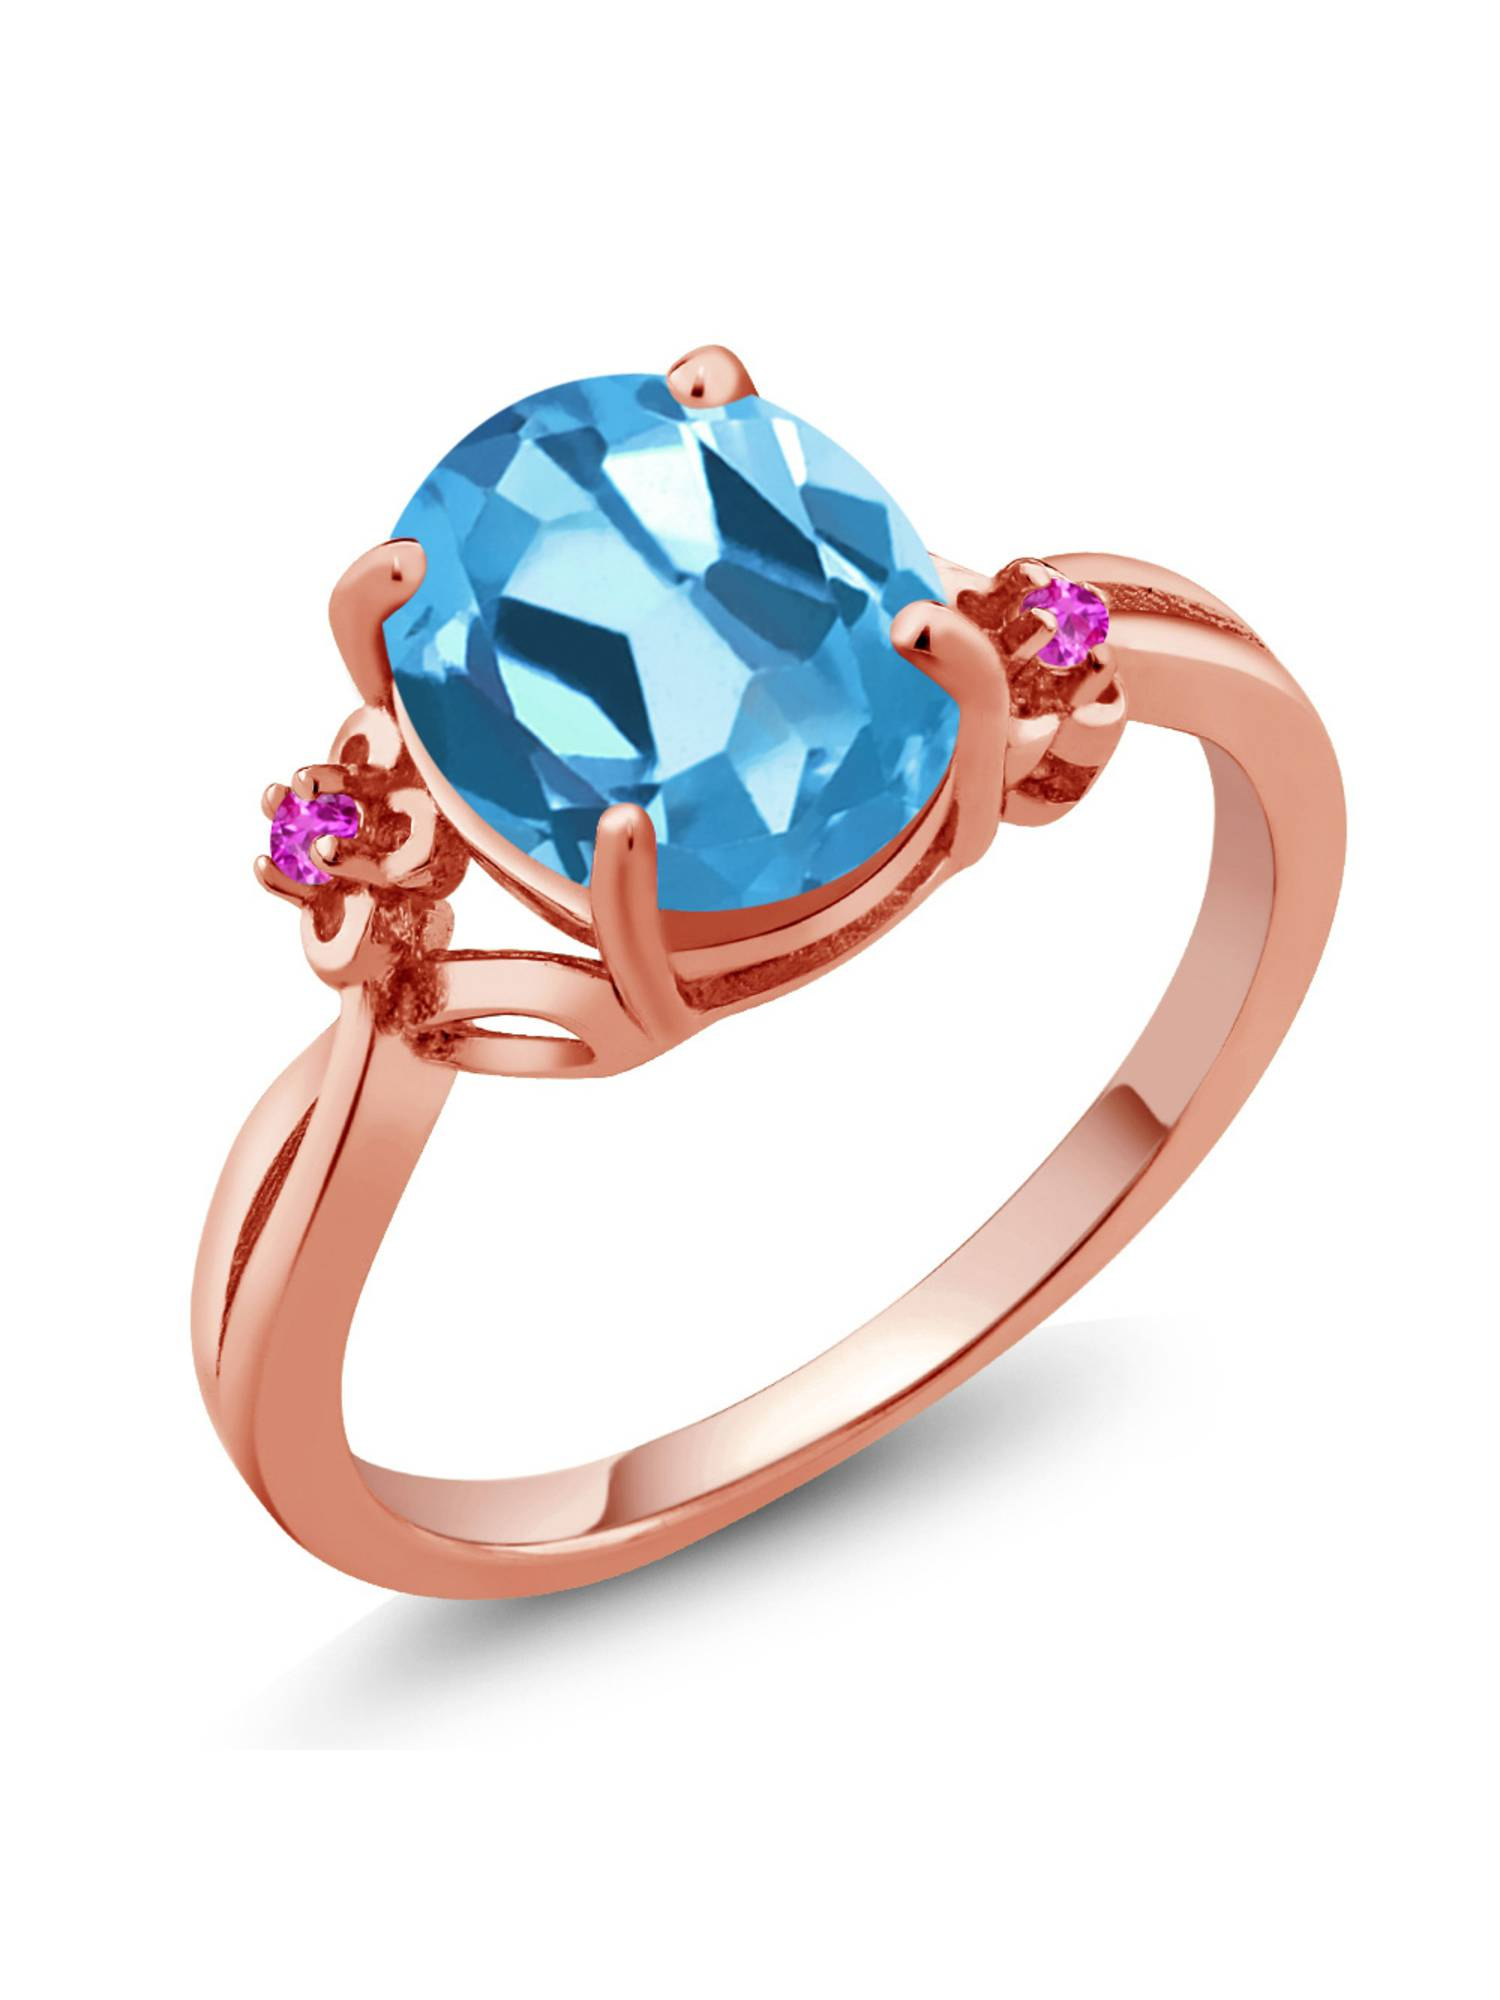 2.74 Ct Oval Swiss Blue Topaz Pink Sapphire 14K Rose Gold Ring by